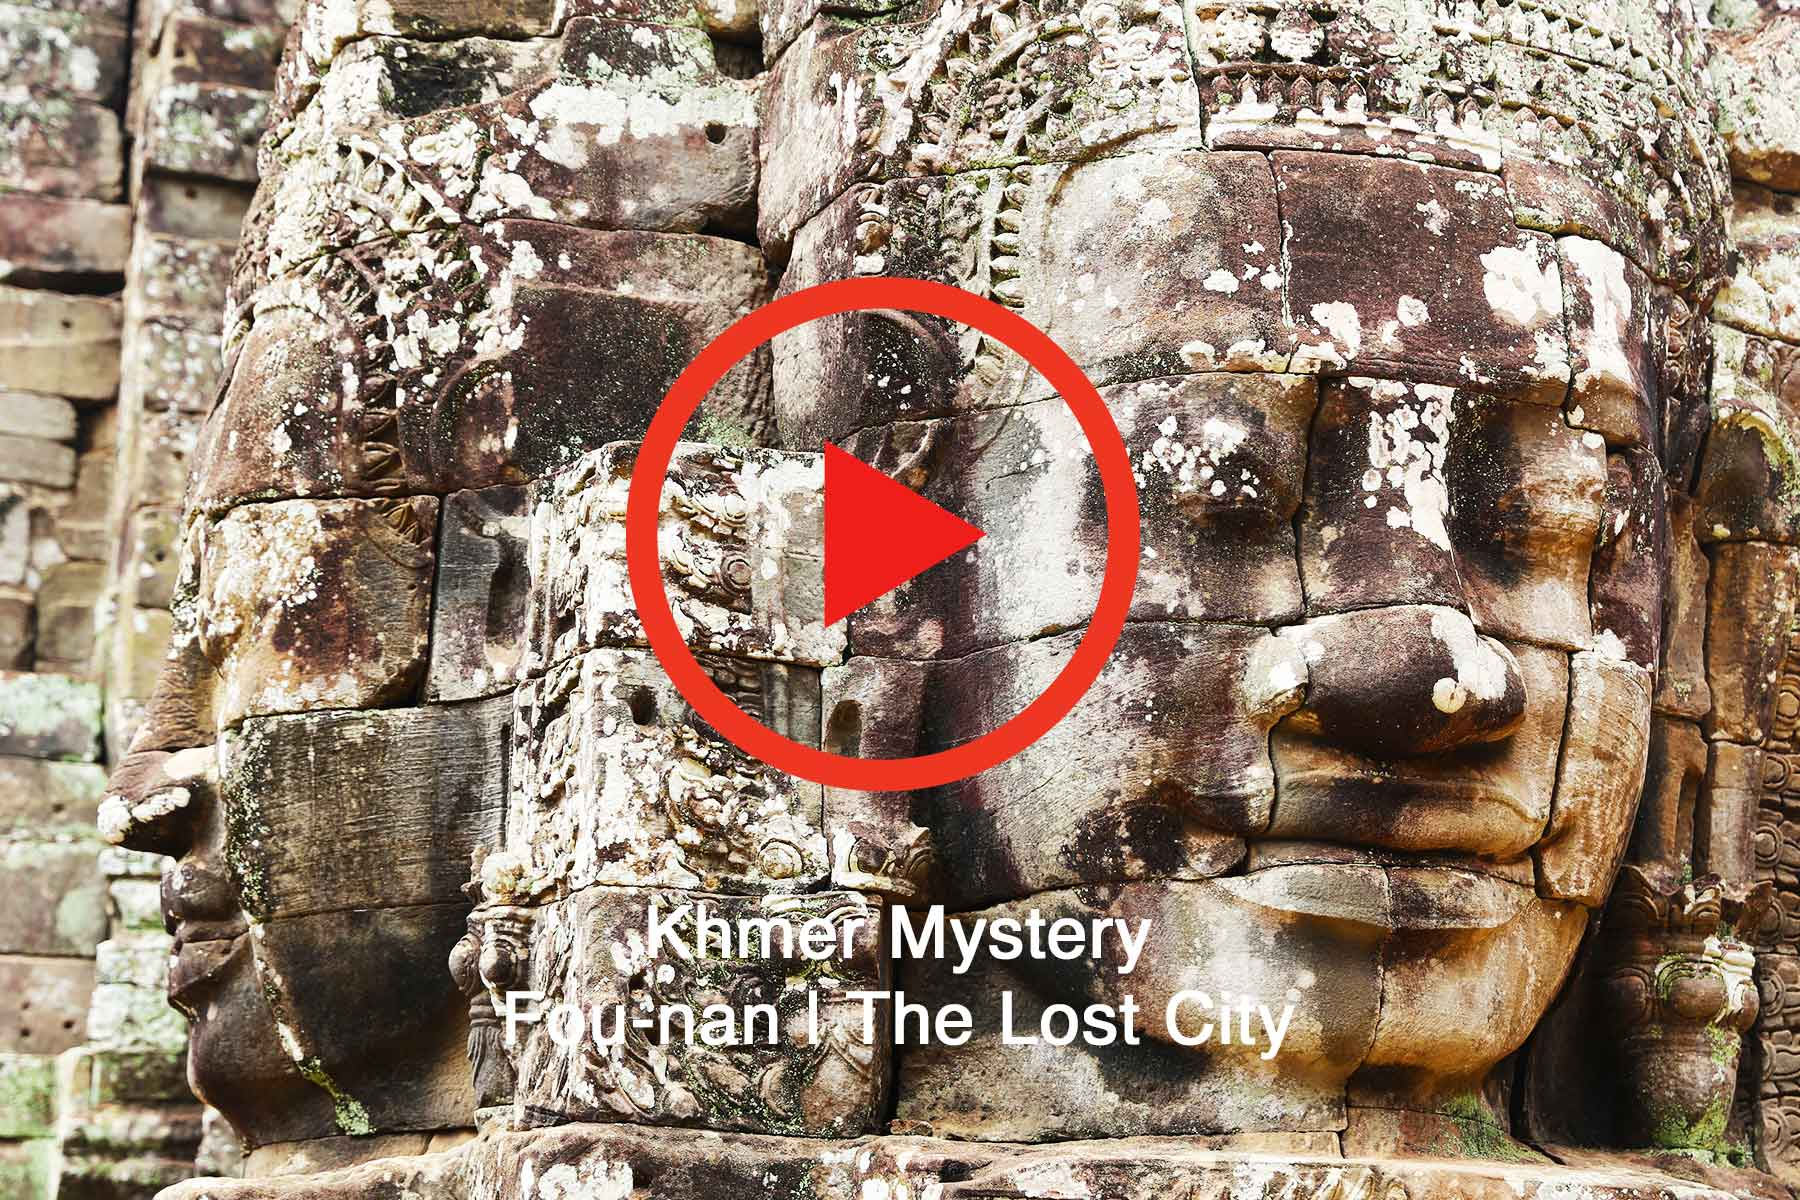 Southeast Asian Civilization - Khmer Mystery Fou-nan Lost City Video - Charles Higham - Cambodia Research - Steven A Martin